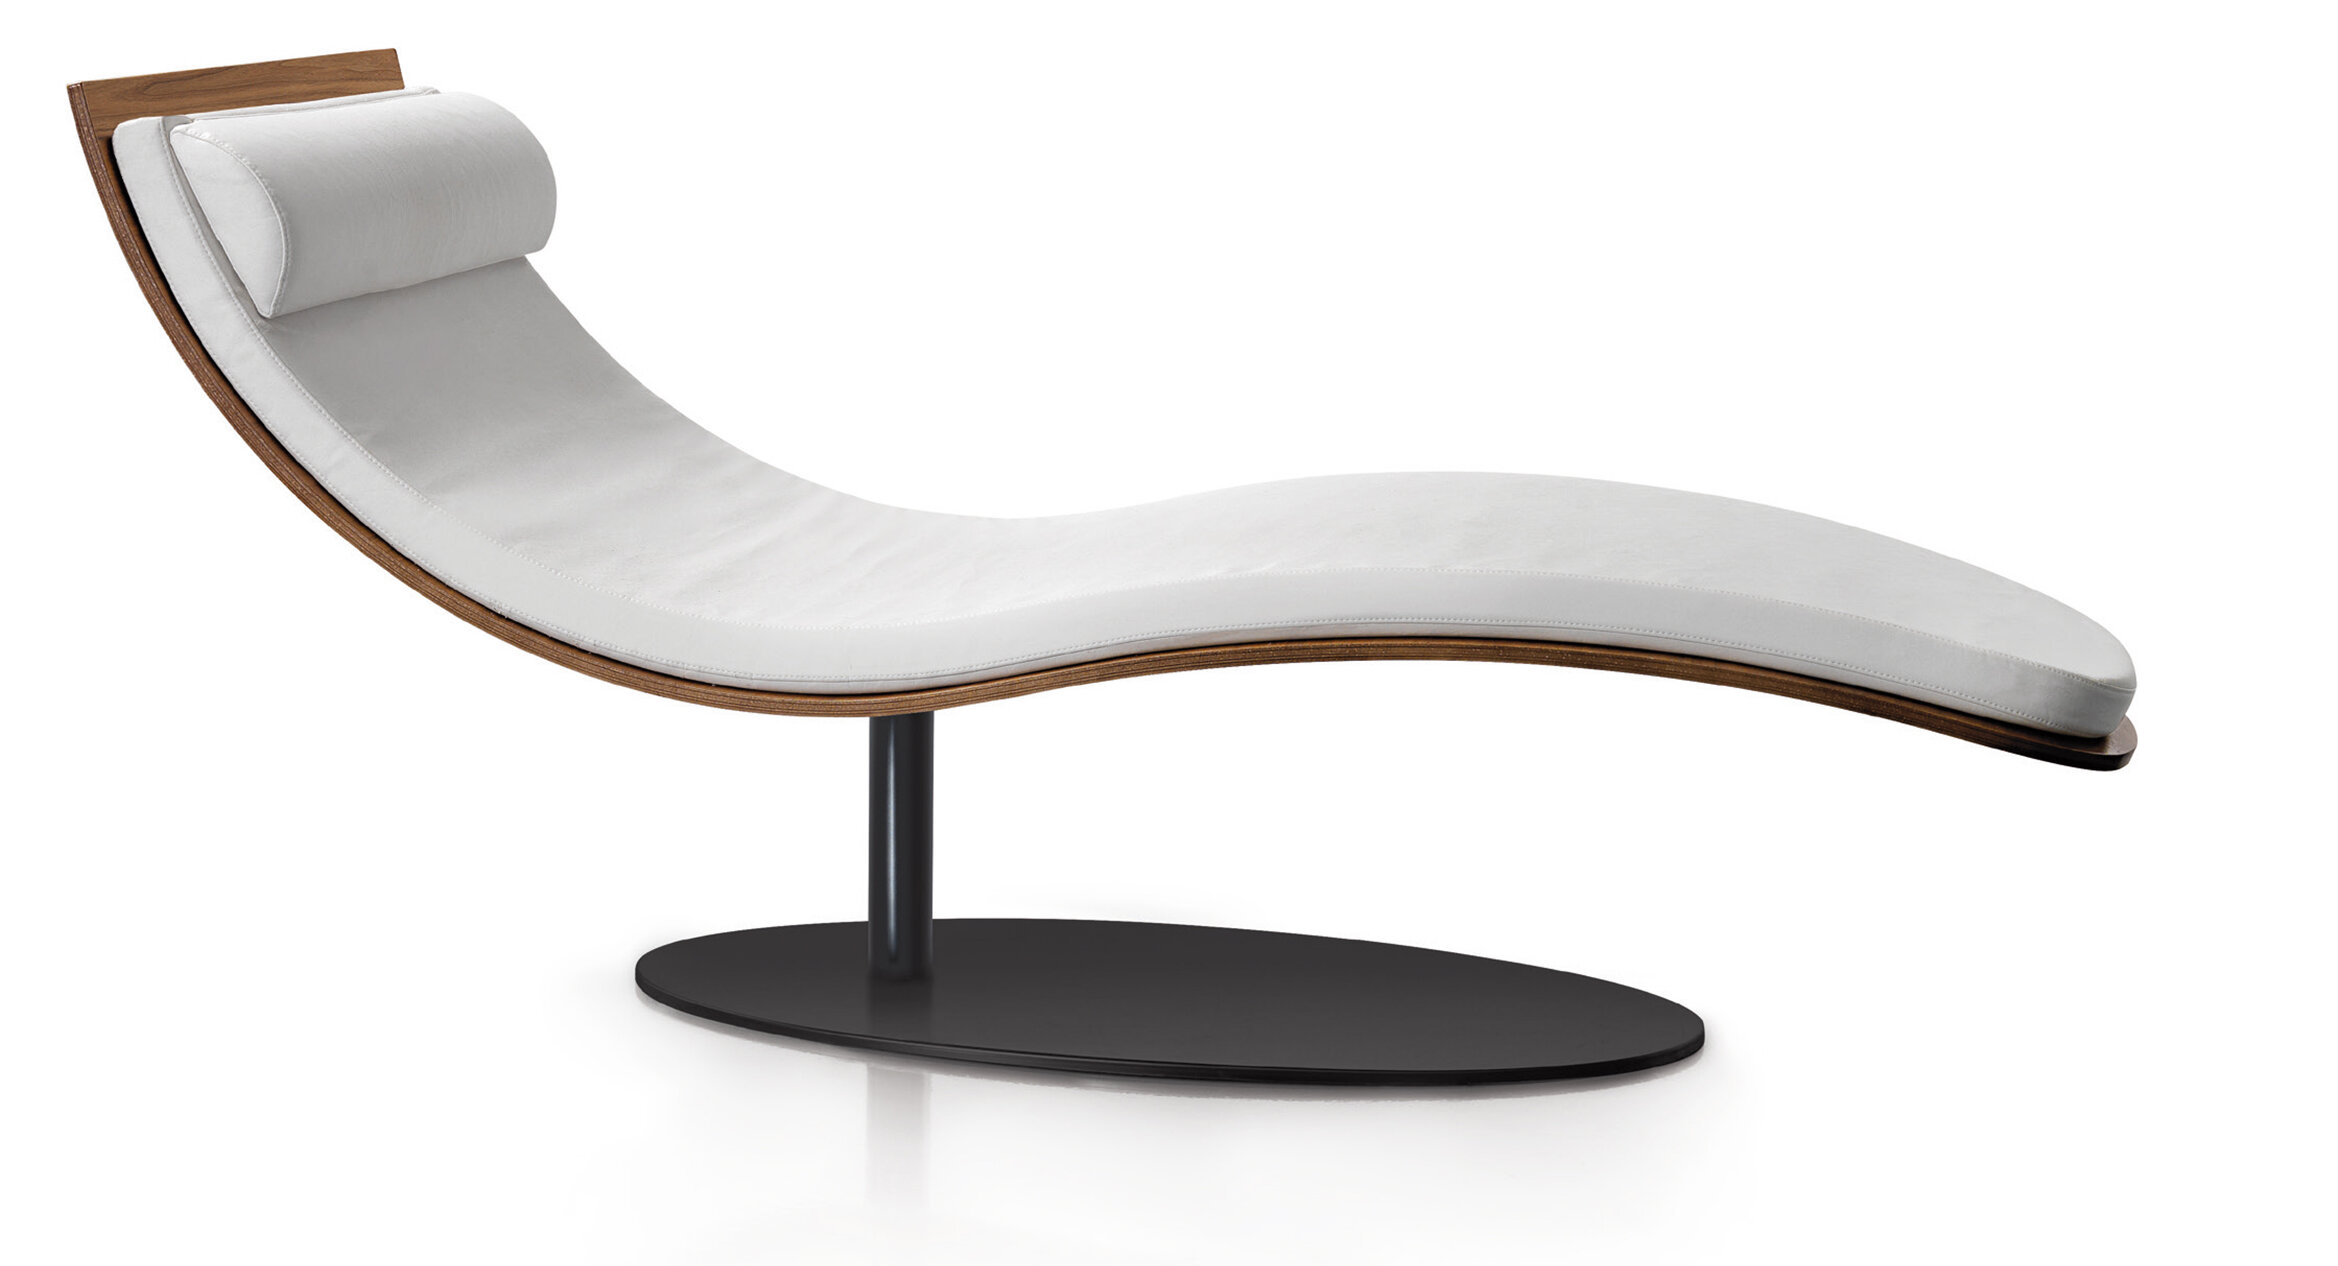 Astounding Daventry Leather Chaise Lounge Andrewgaddart Wooden Chair Designs For Living Room Andrewgaddartcom